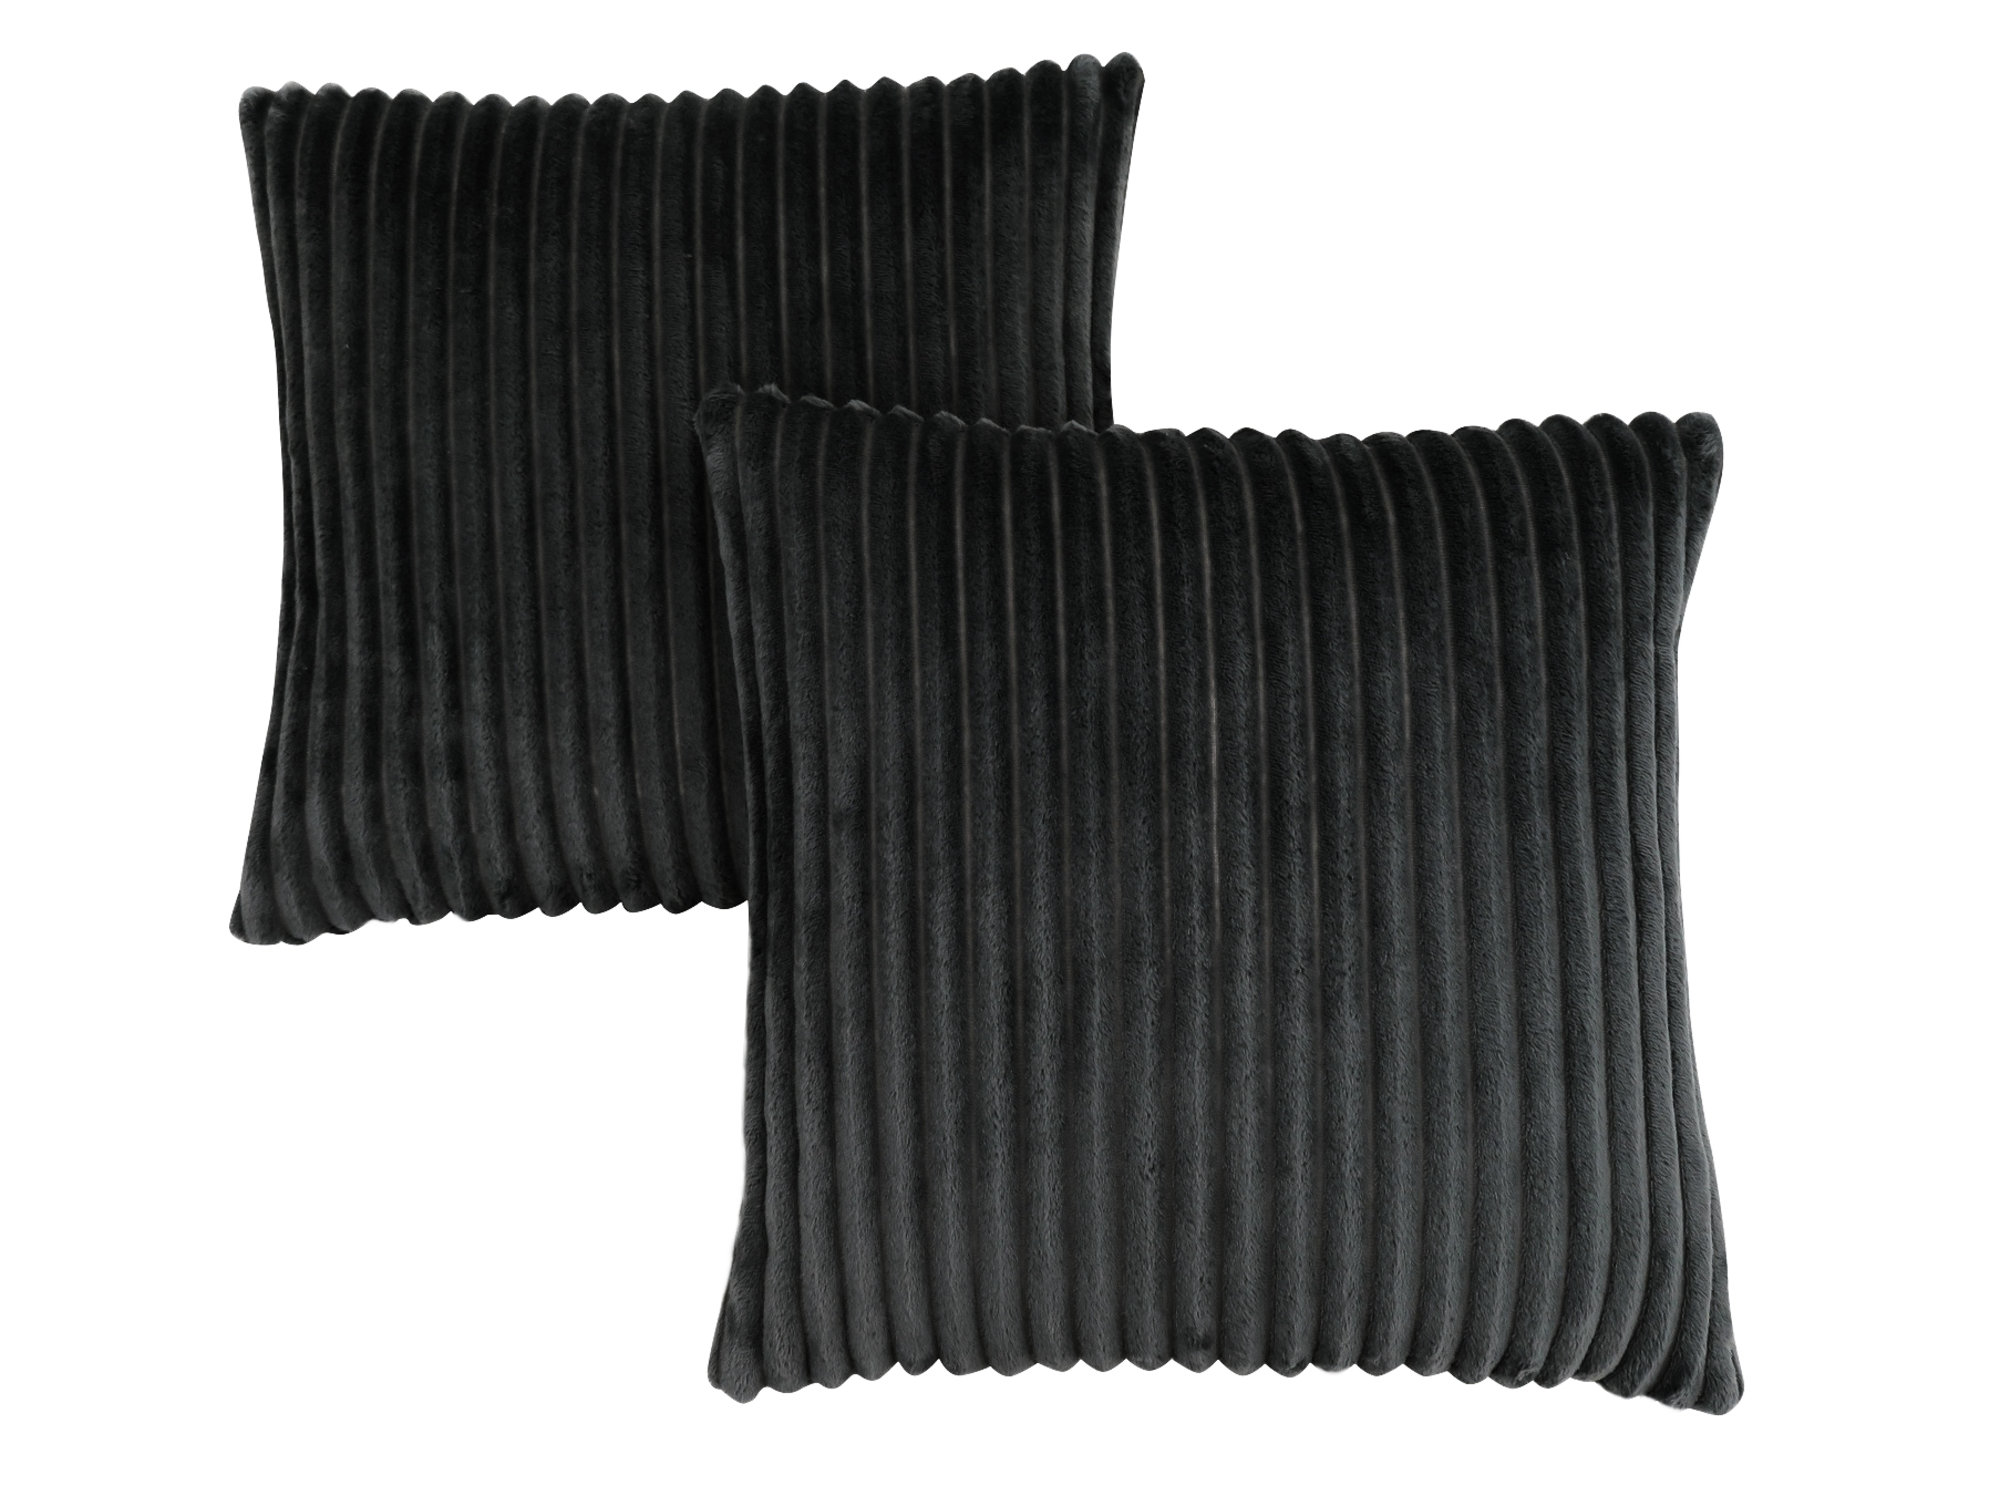 "PILLOW - 18""X 18"" / BLACK TEXTURED RIB / 2PCS"